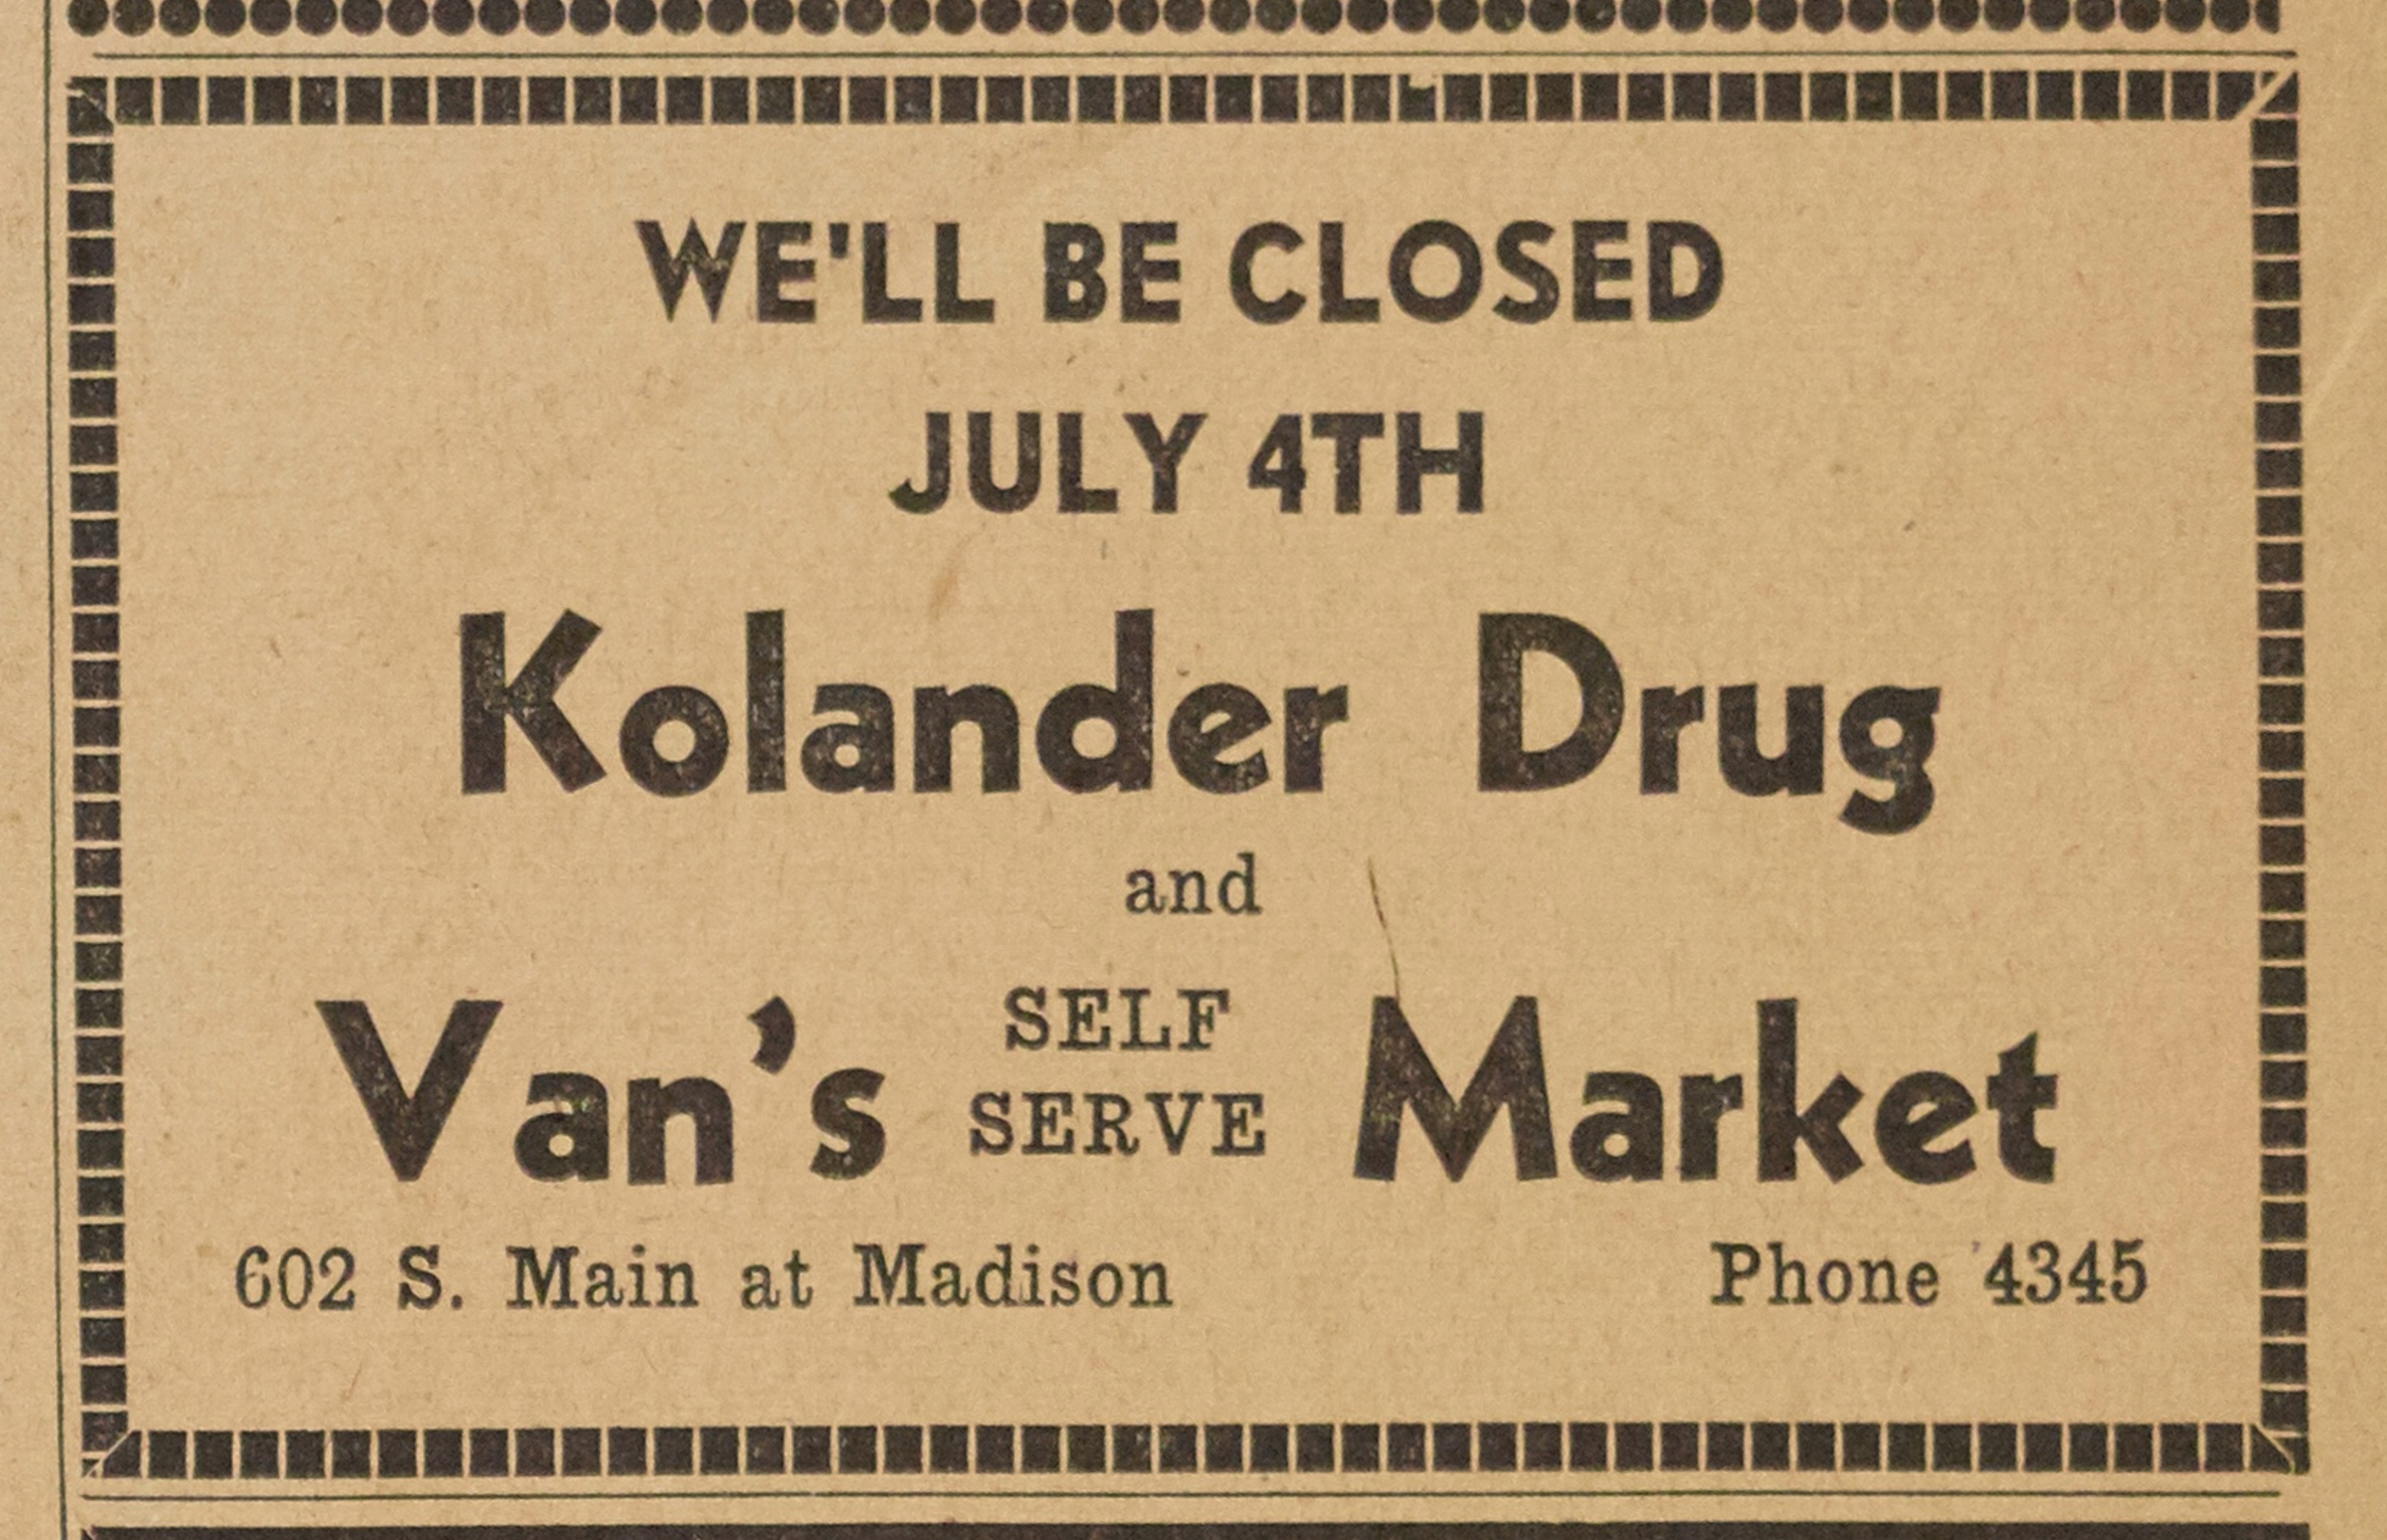 Kolander Drug and Van's Market image